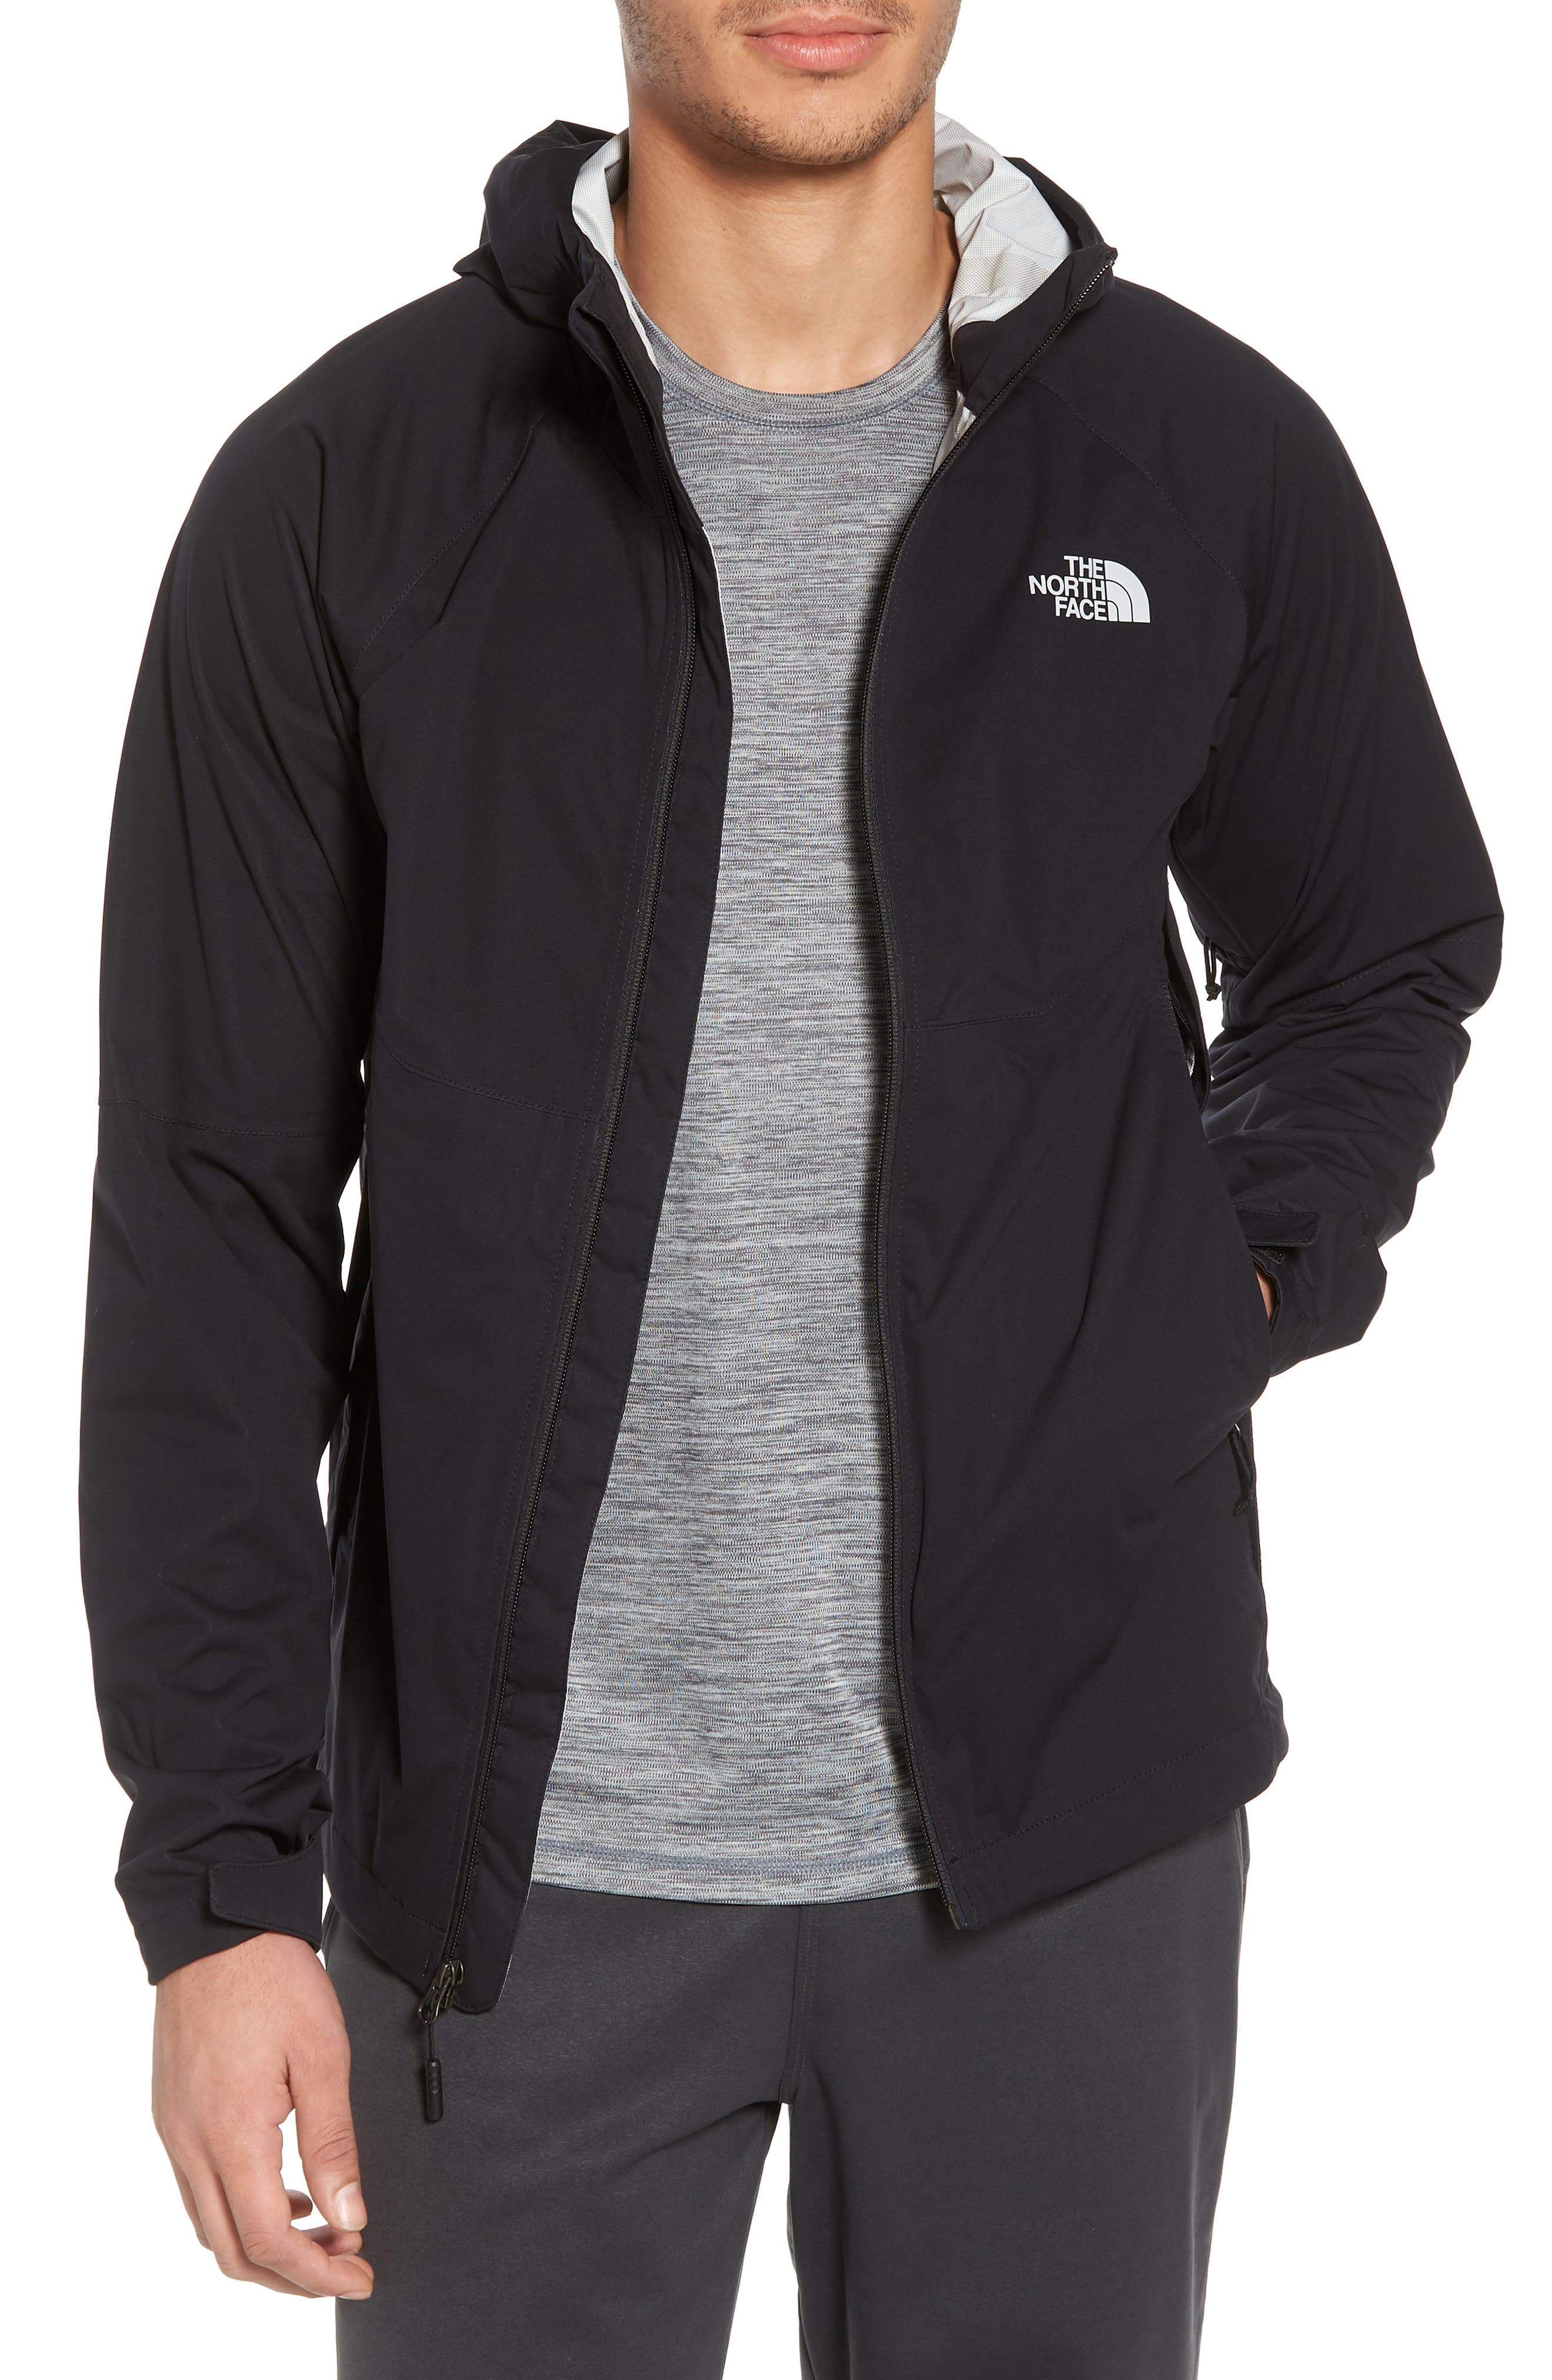 The North Face Allproof Stretch Hooded Rain Jacket